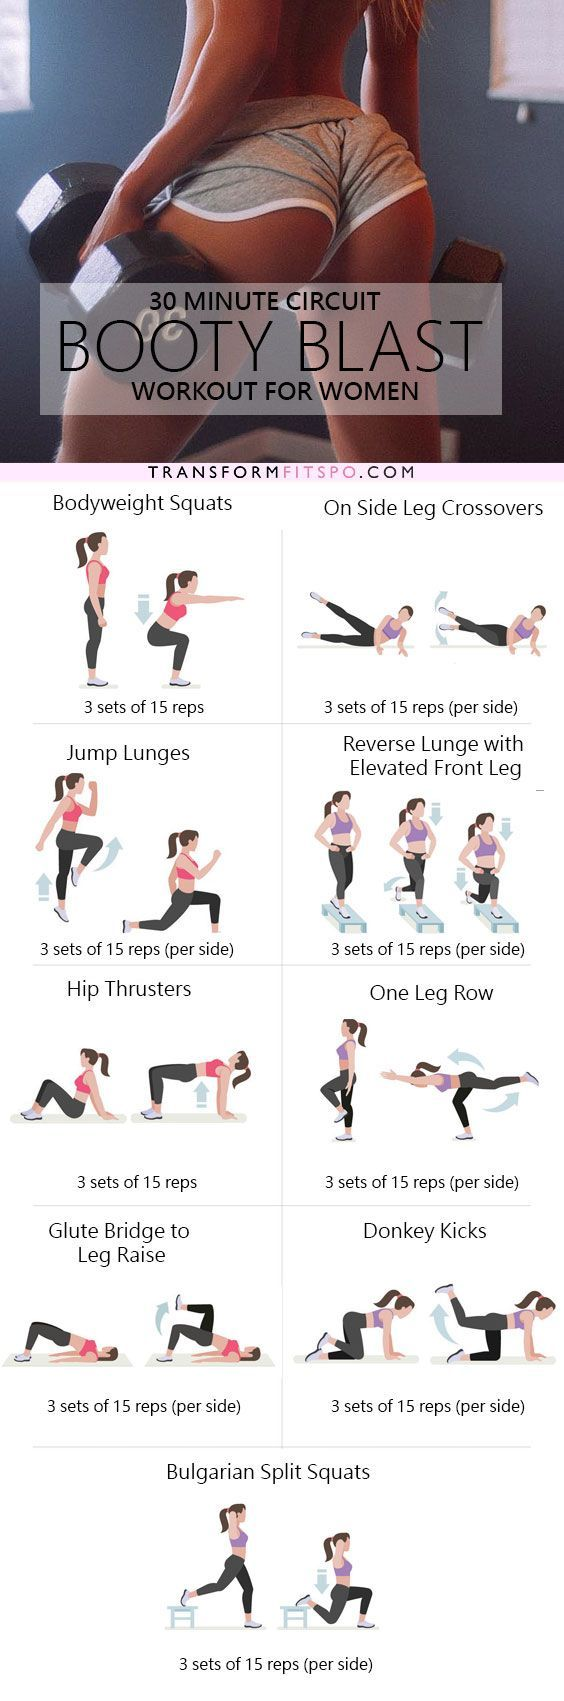 A killer 30 minute workout designed to target your glutes, developing a larger, rounder booty! Full exercise descriptions in article.